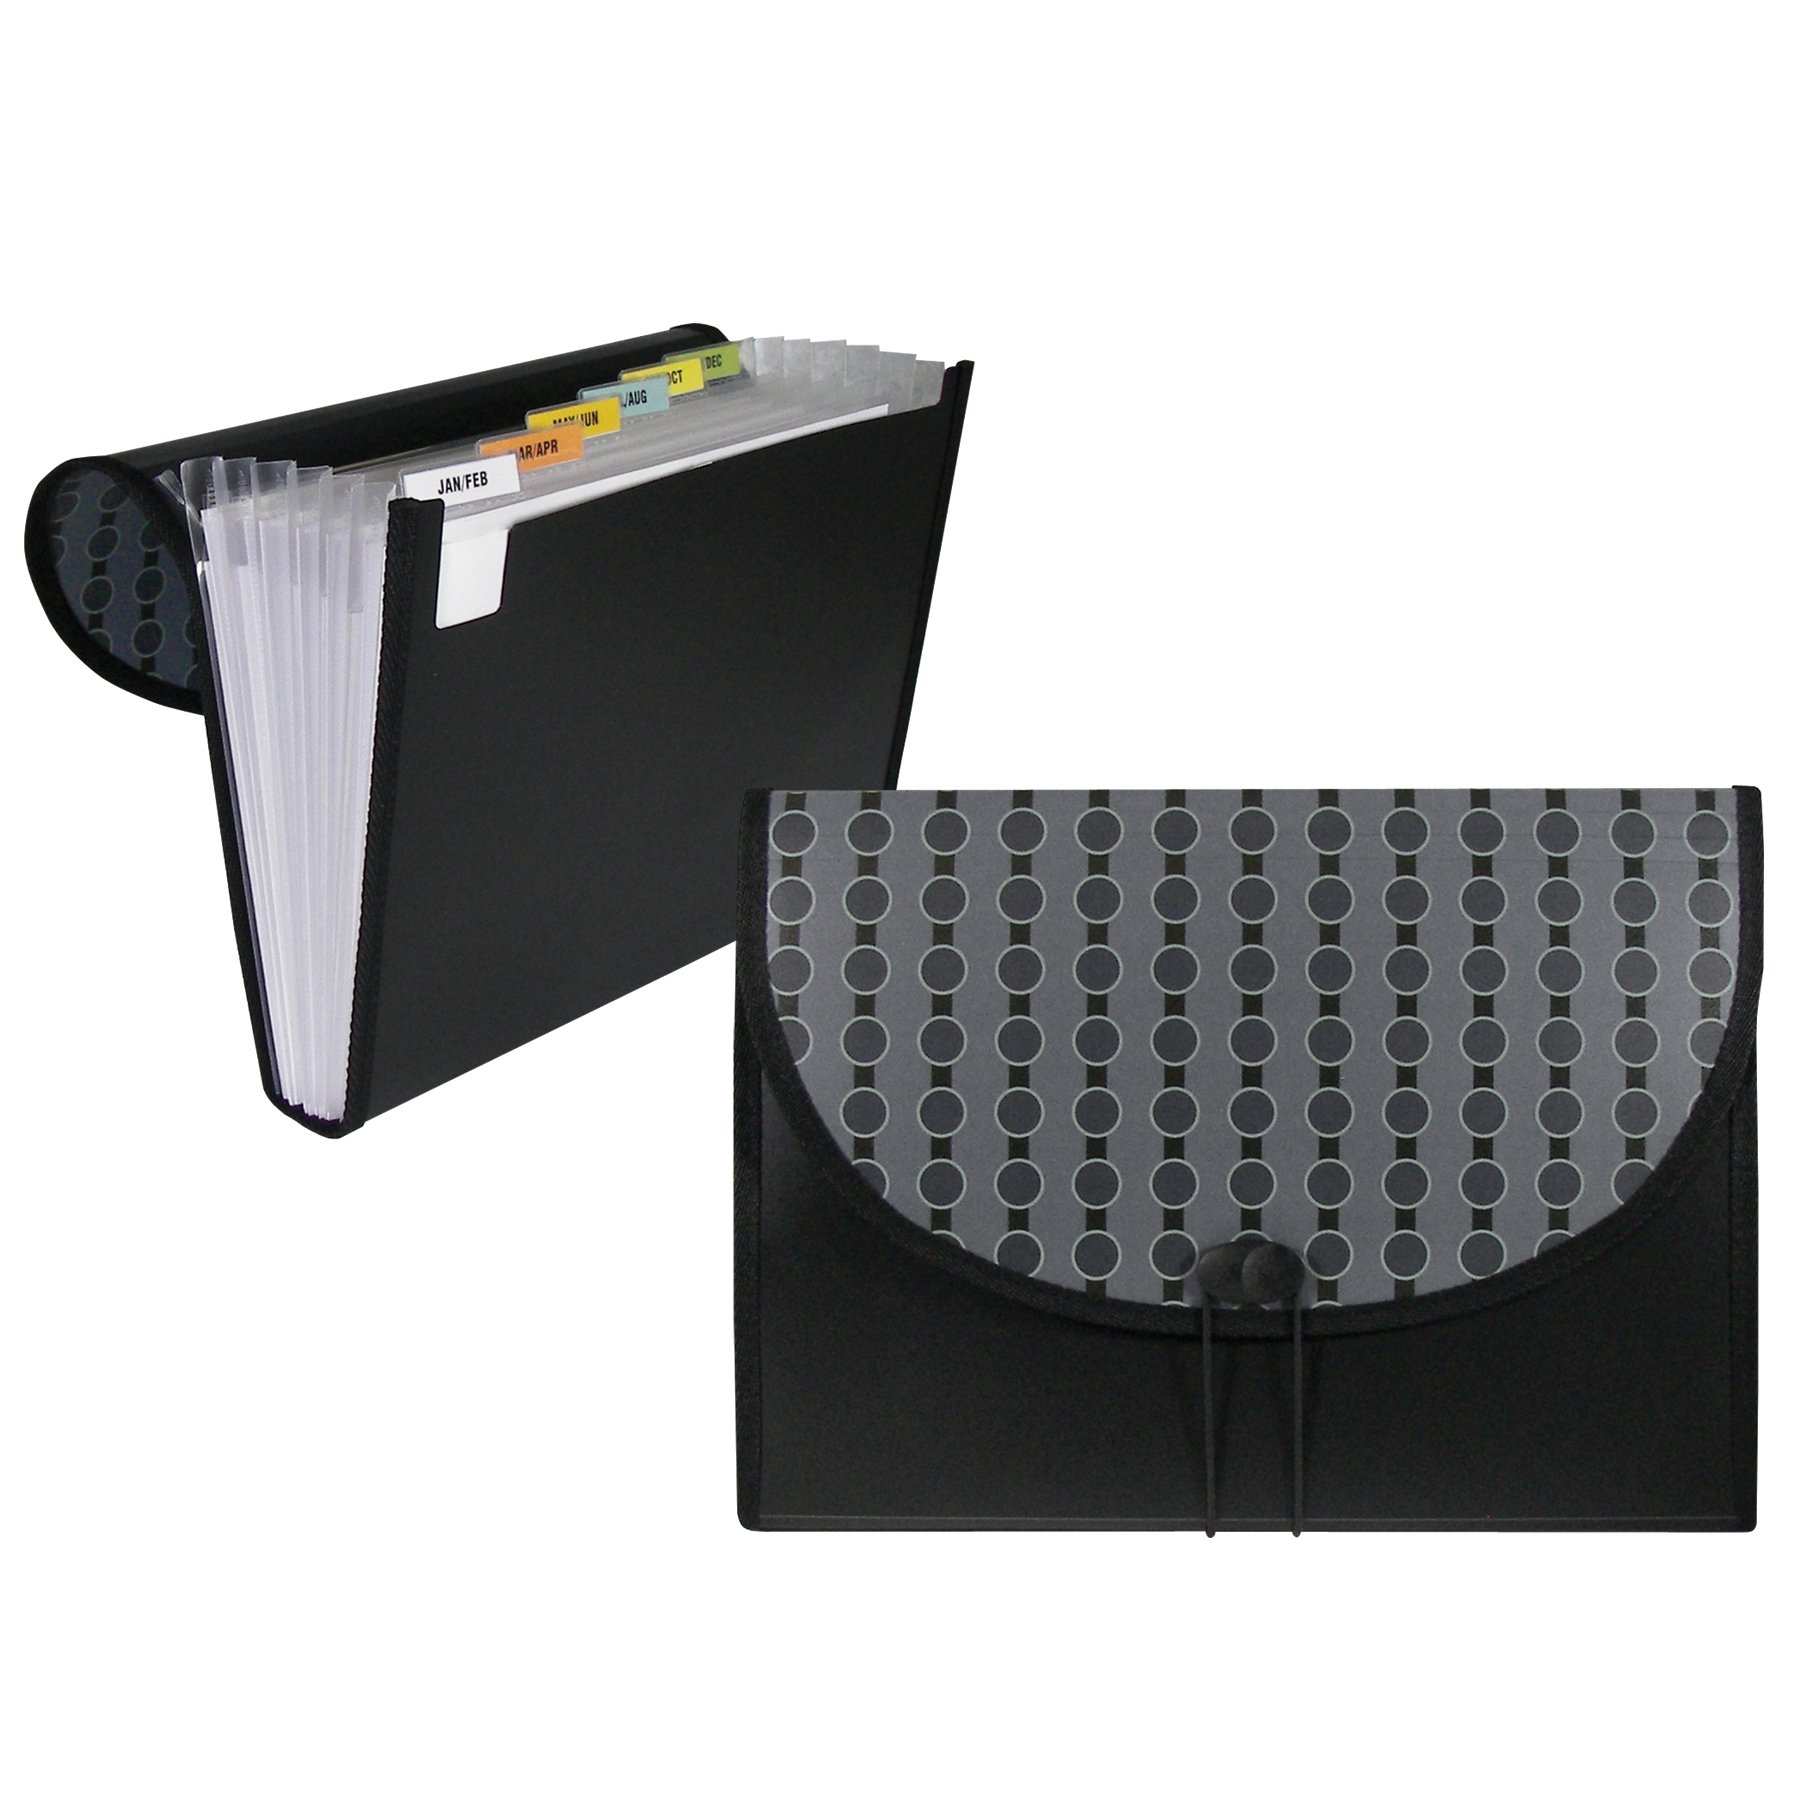 C-Line 7-Pocket Expanding File, Includes Tabs, Letter Size, 1 Expanding File, Fashion Circle Series, Black/Gray (56012)